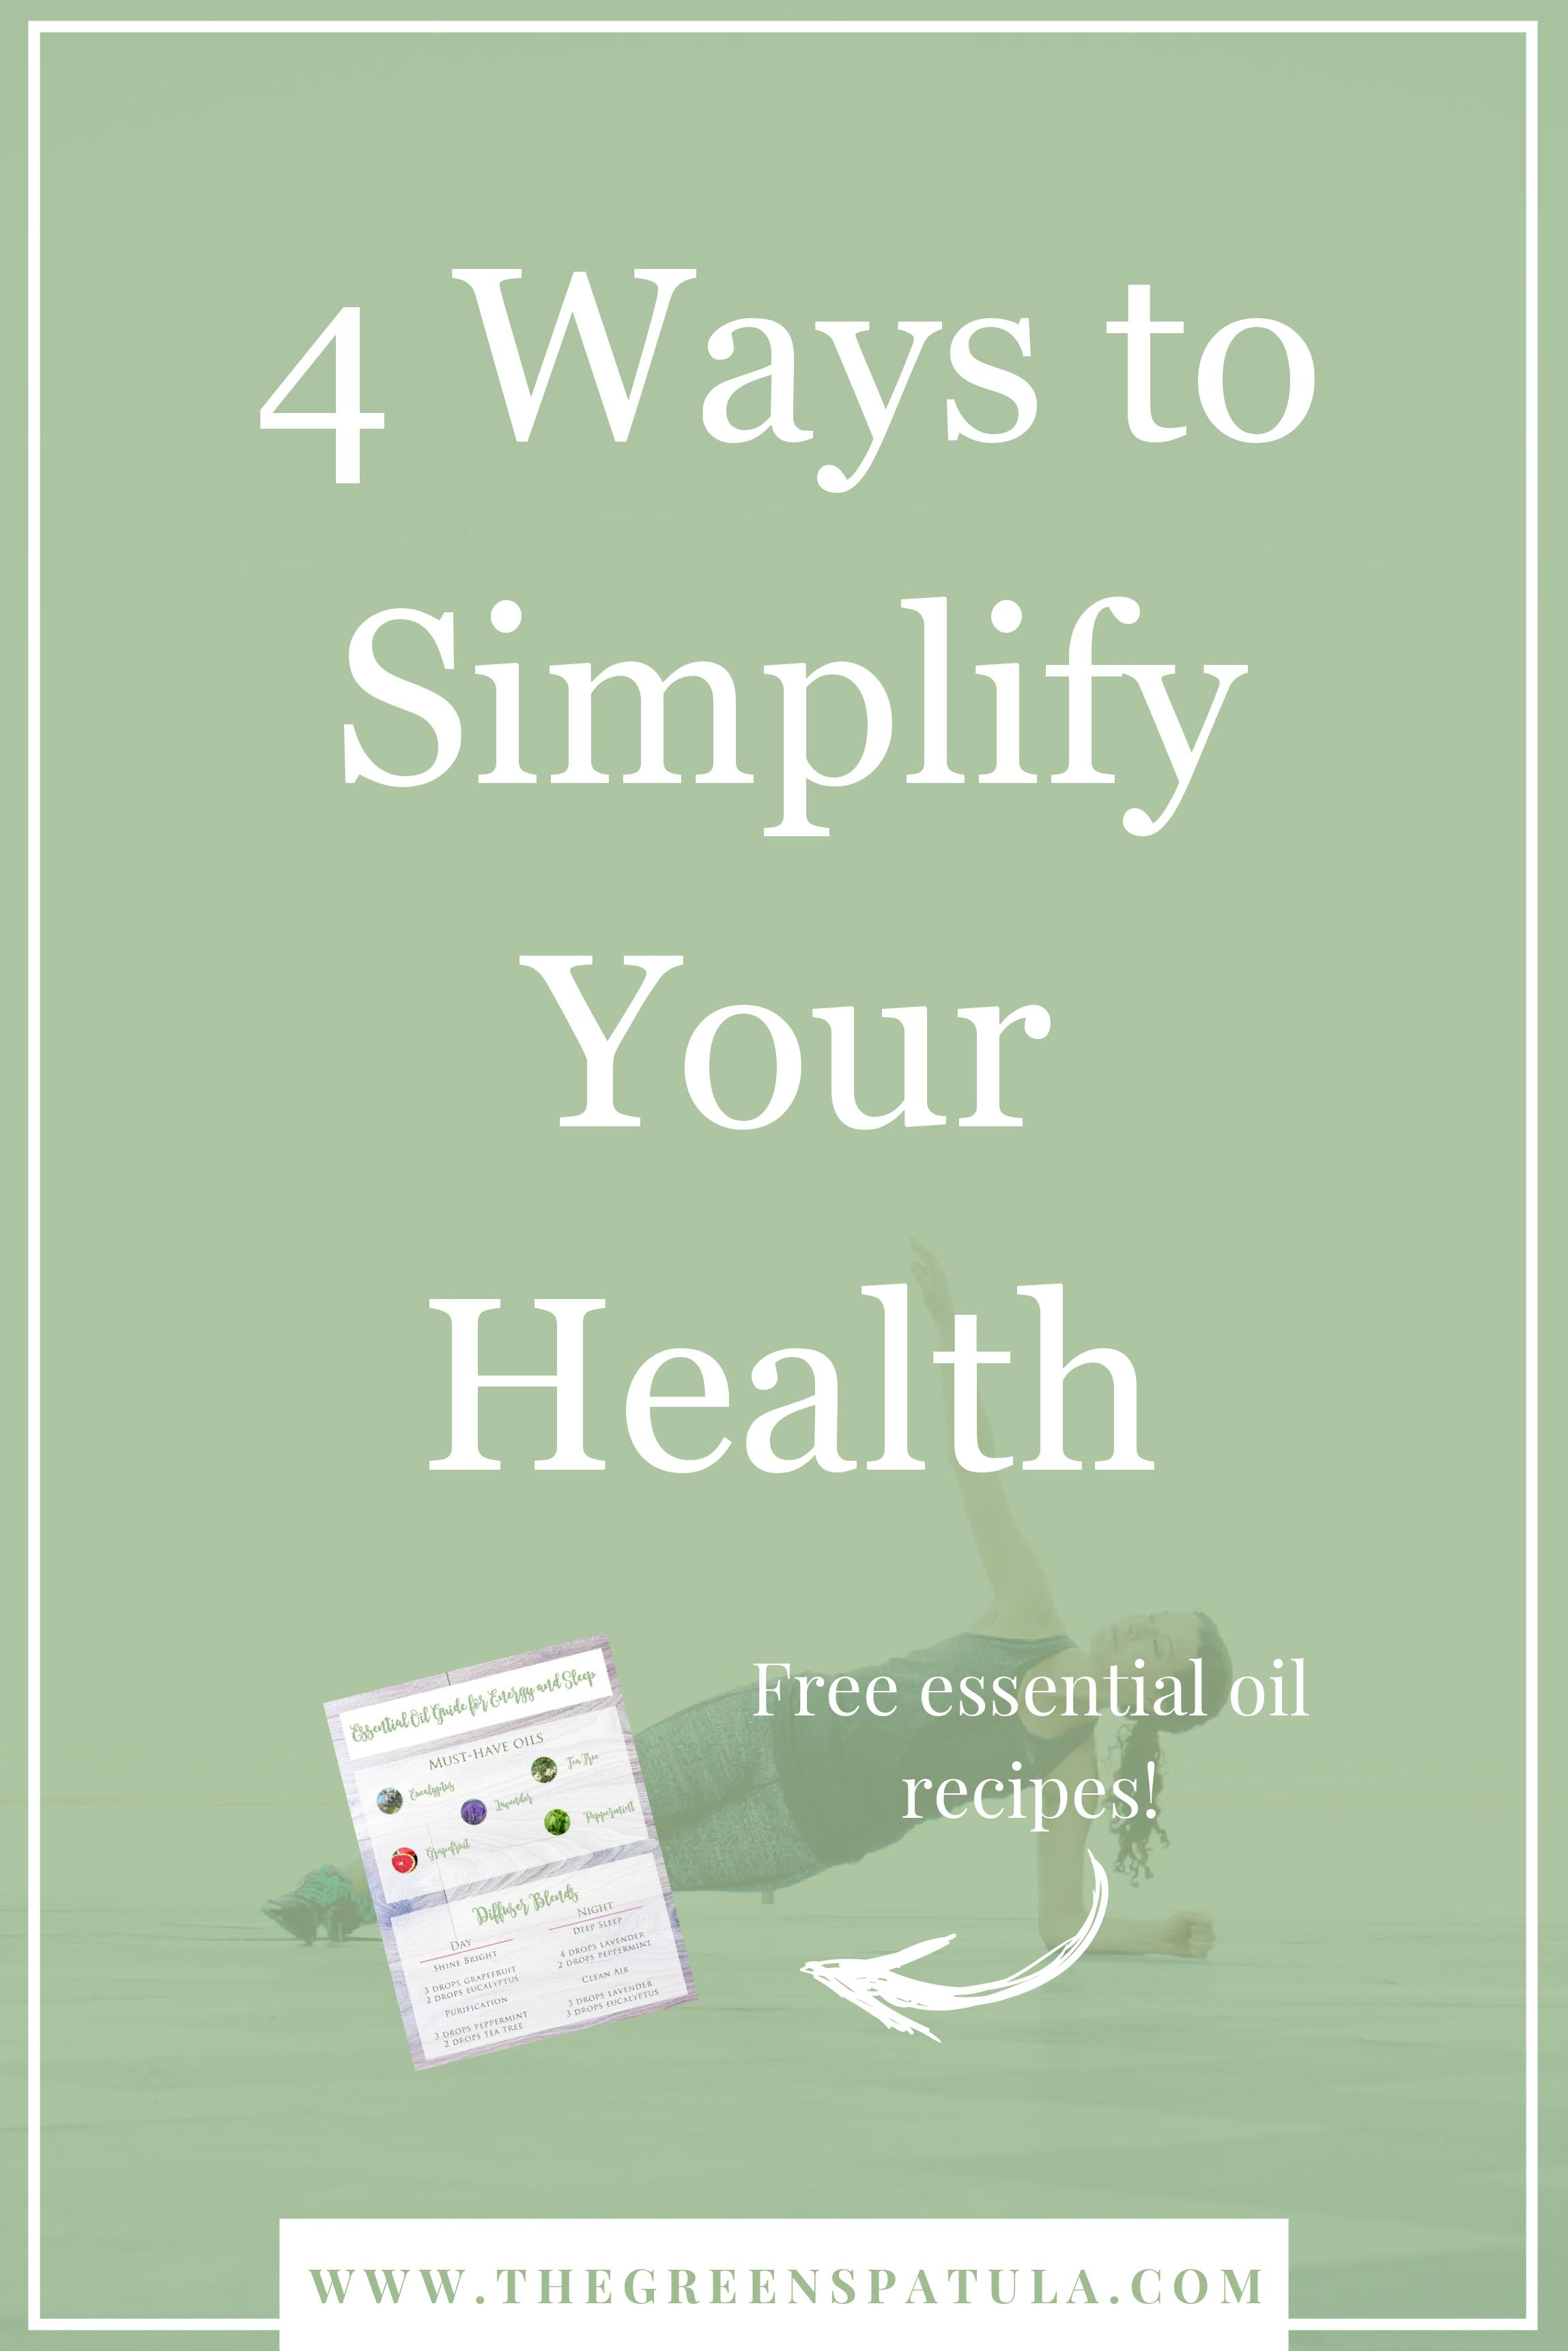 Learn the 4 ways to simplify your health! Improving your wellness, whether you want to lose weight or not, should be about developing a series of small, sustainable steps that lead to creating a maintainable healthy lifestyle. Because that's what we want, right? A life that is enjoyable where we feel strong, healthy, satisfied, and like we can indulge from time to time without guilt or deprivation. #sleep #vegan #plantbased #healthylifestyle #yoga #essentialoils